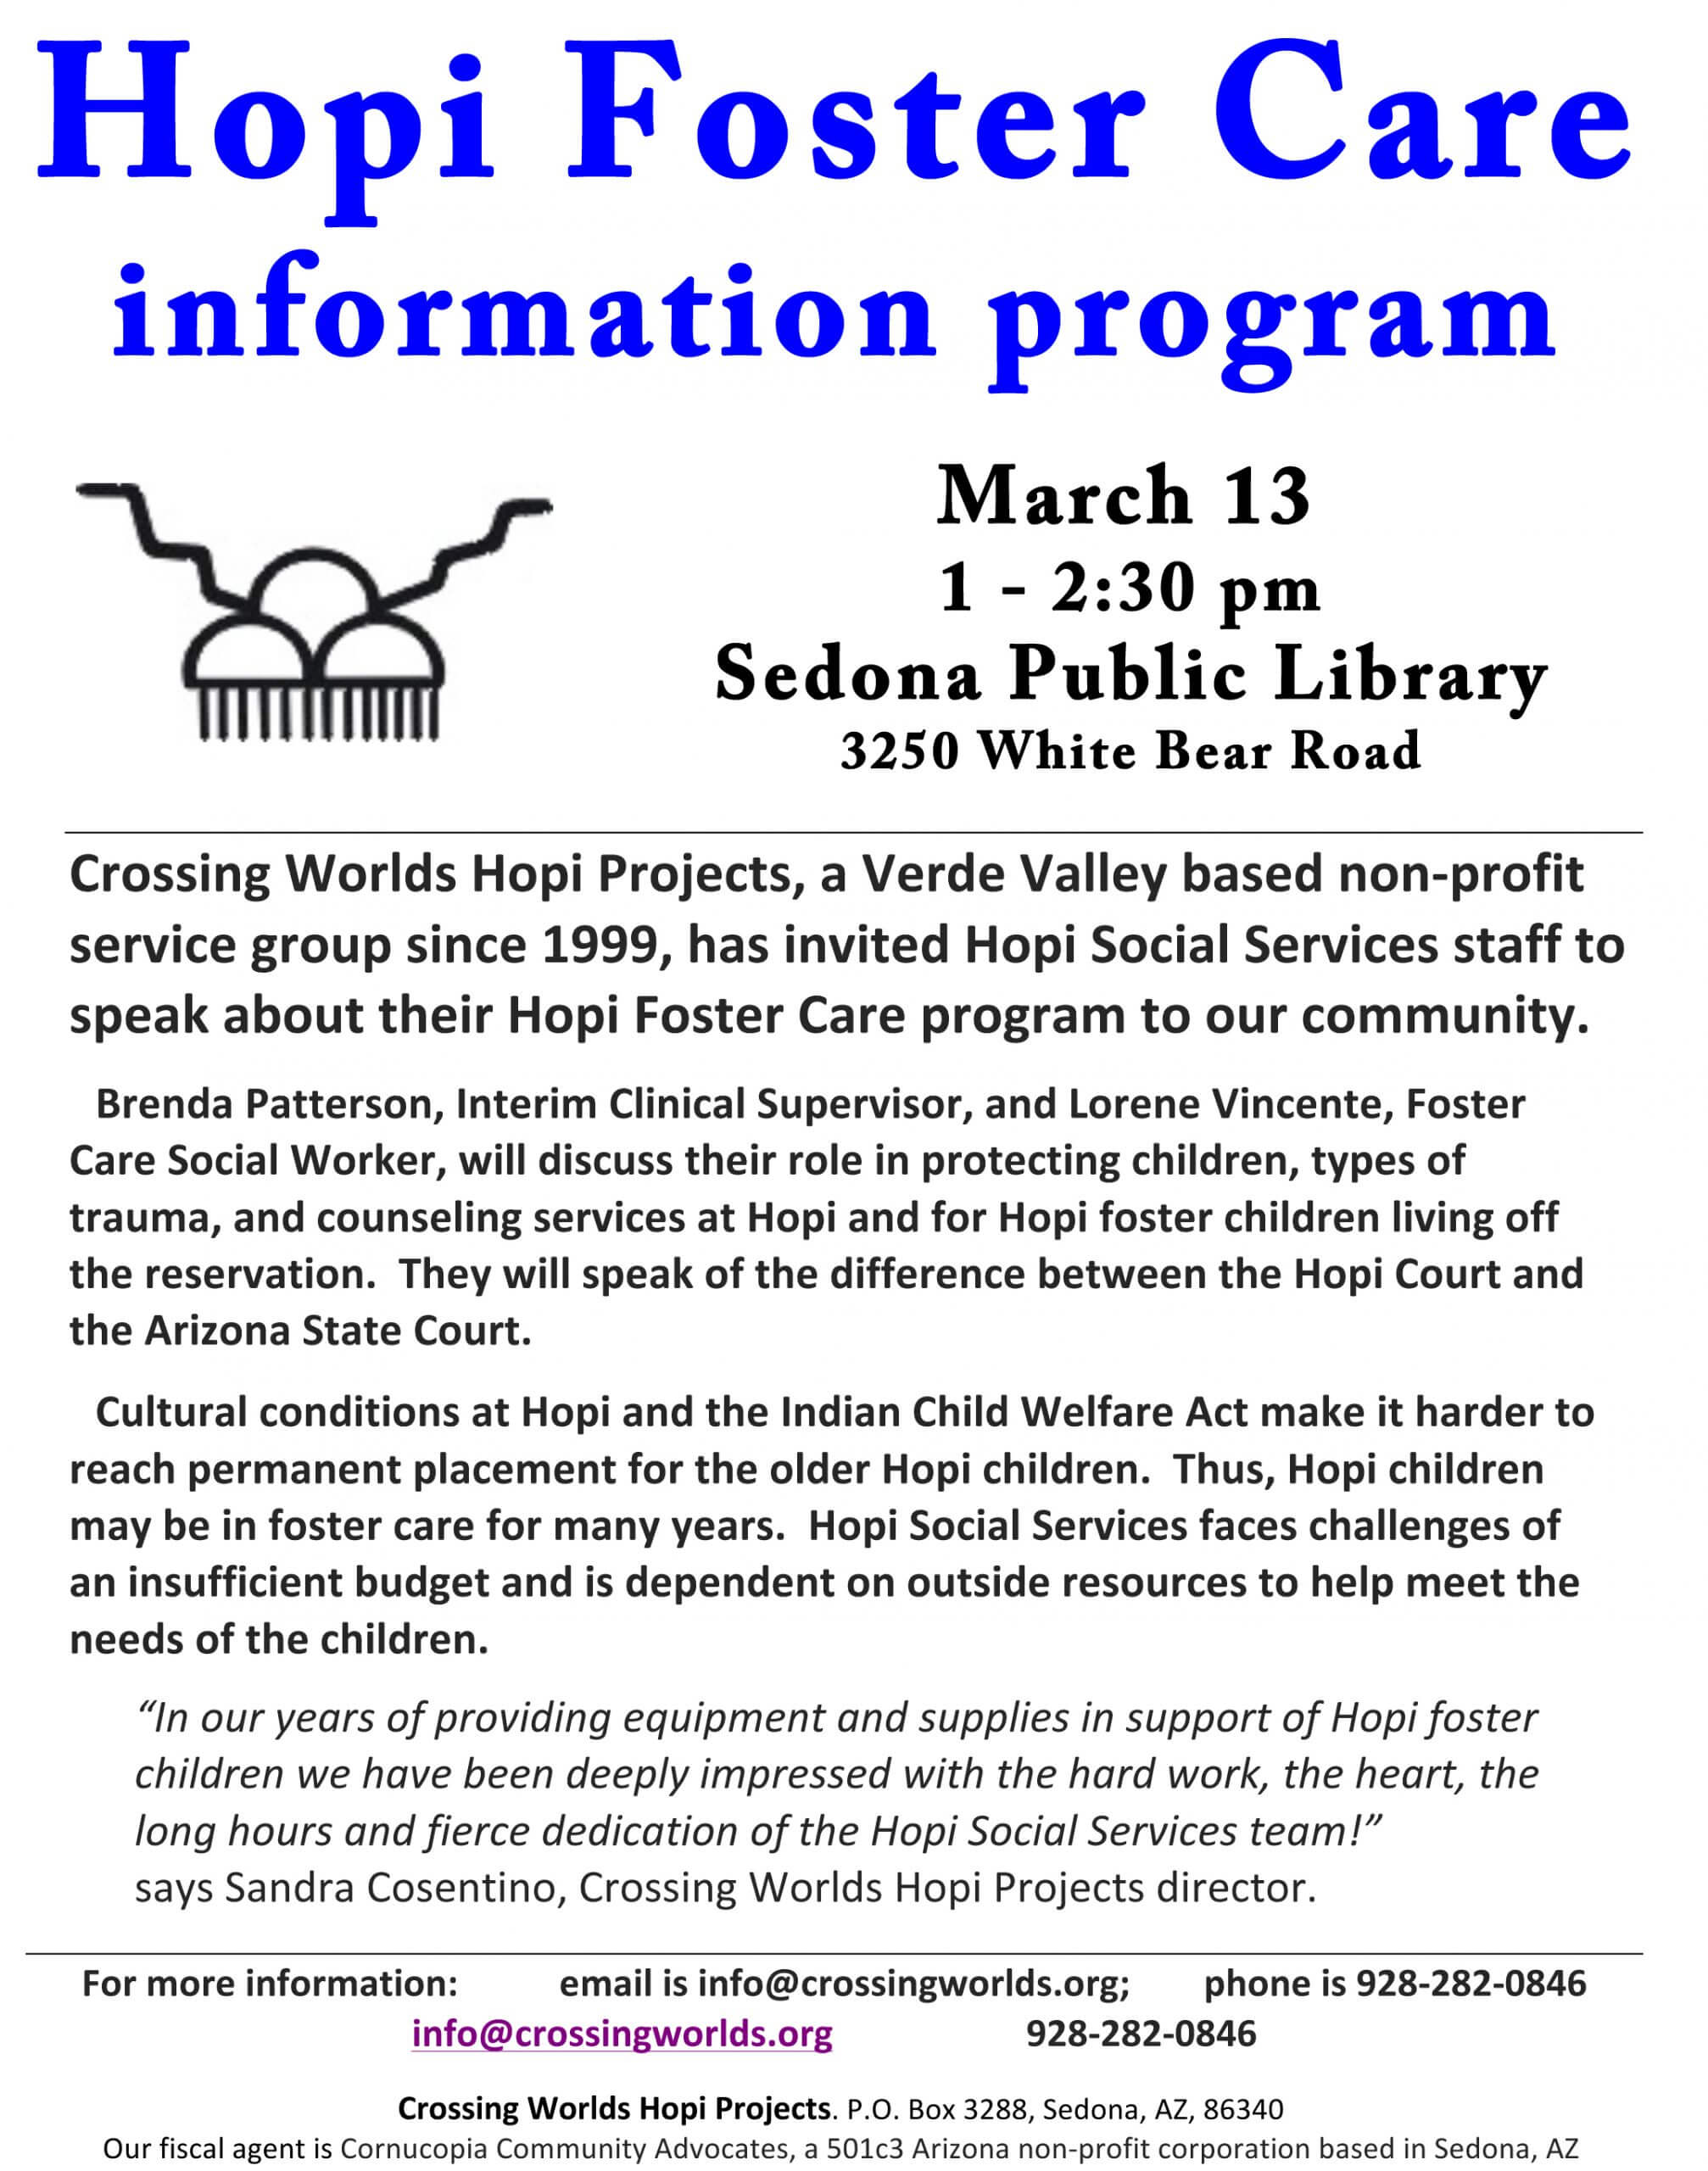 Hopi Foster Care Information Program in Sedona